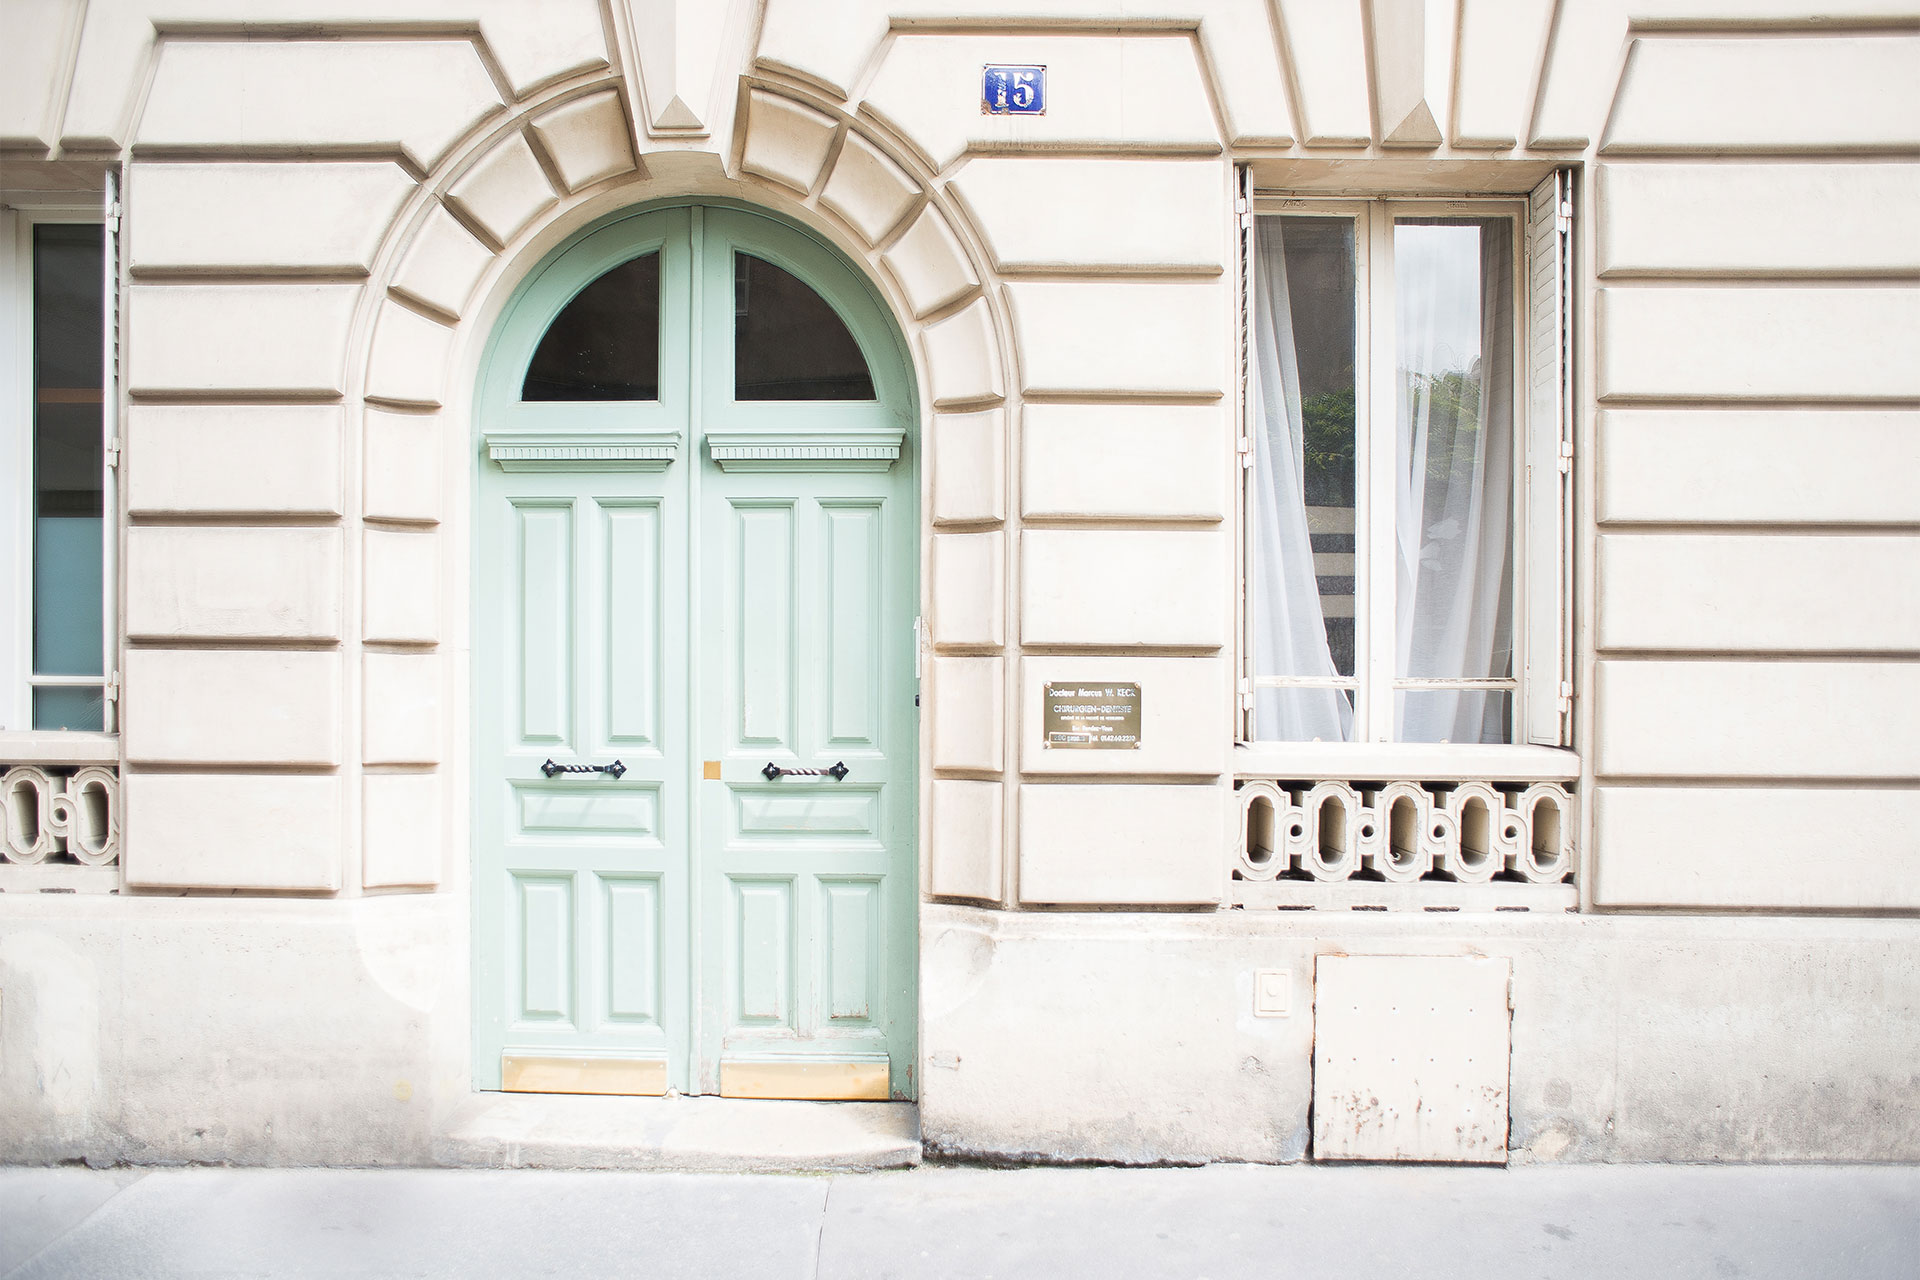 Stunning Parisian buildings line every street near the Bourgogne